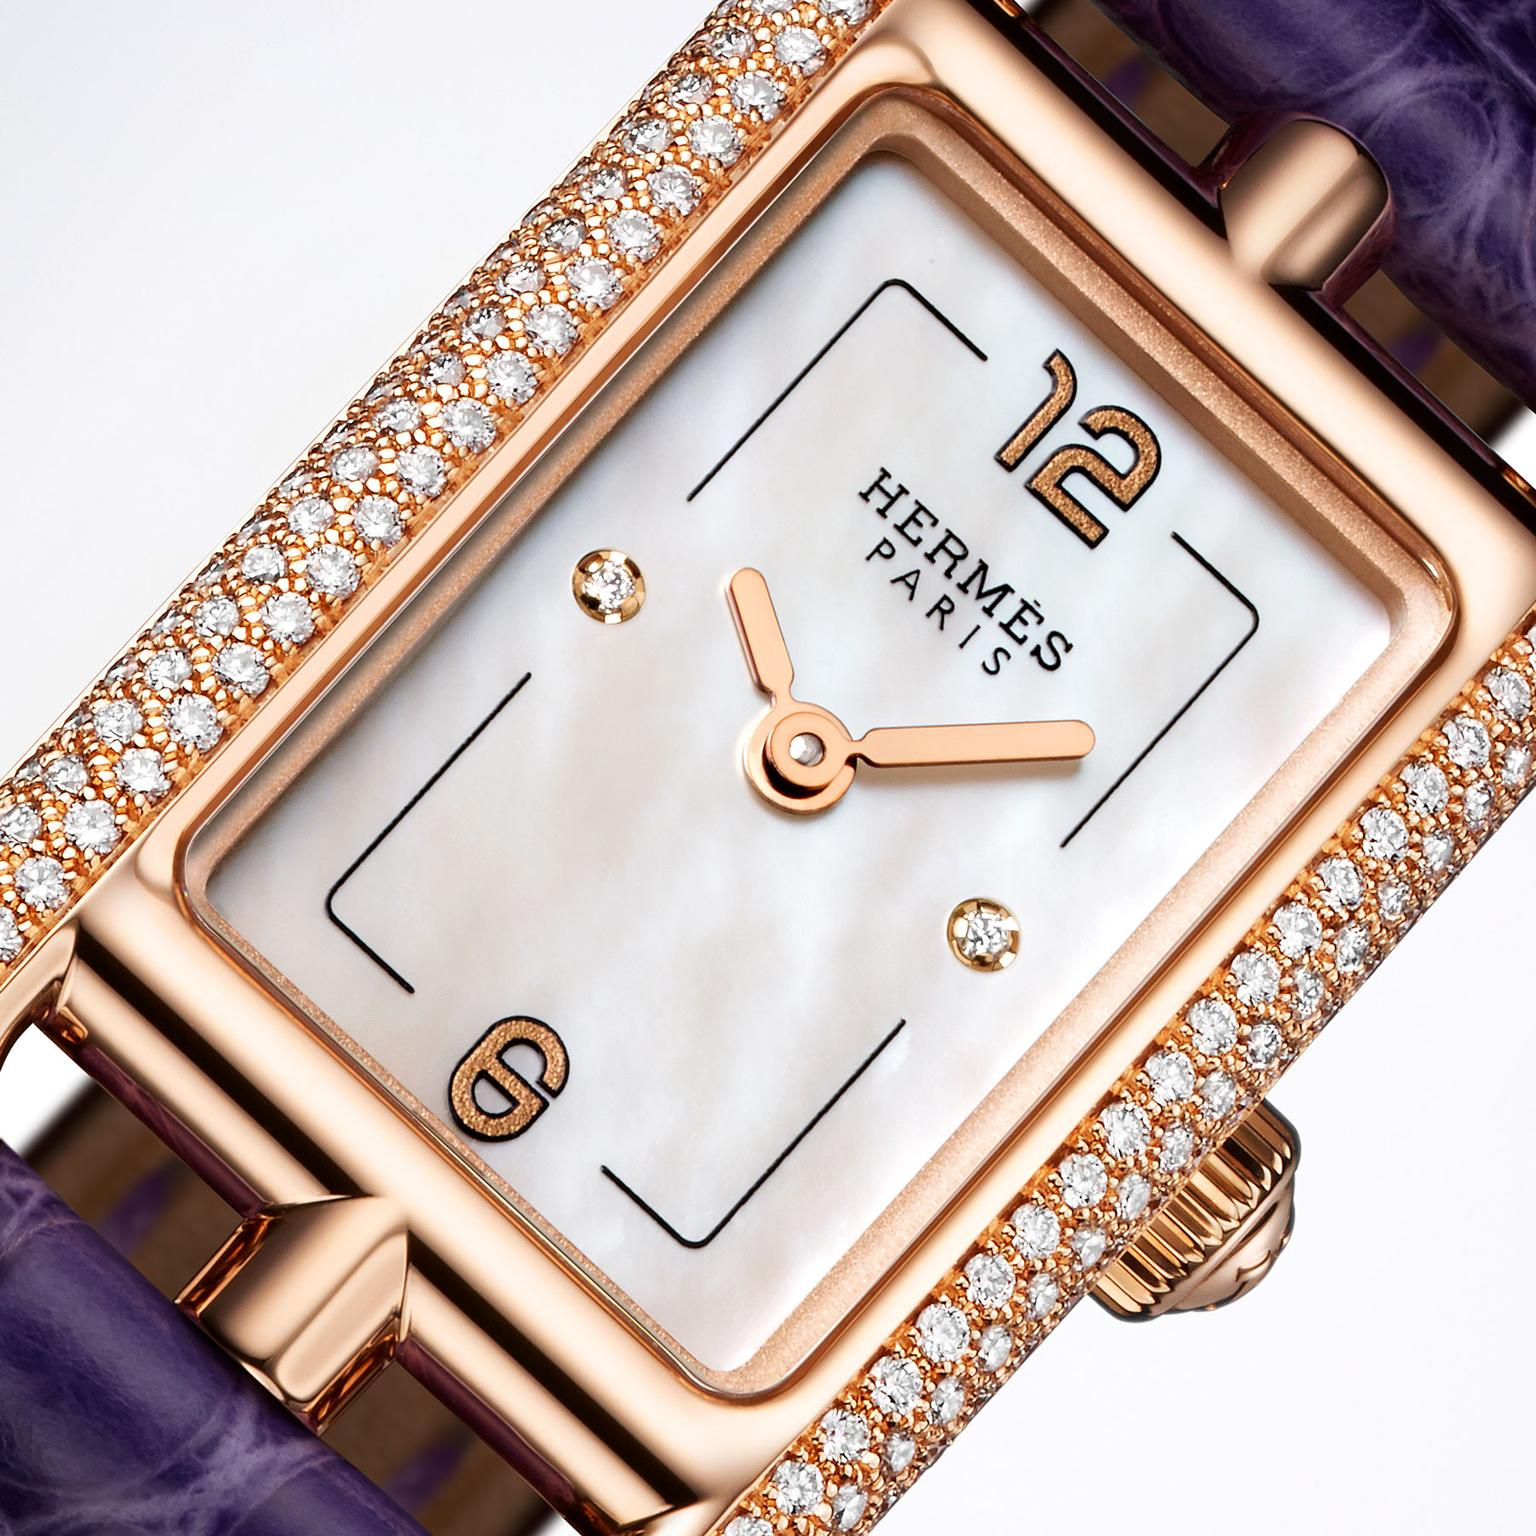 Hermes Nantucket watch in rose gold with diamonds